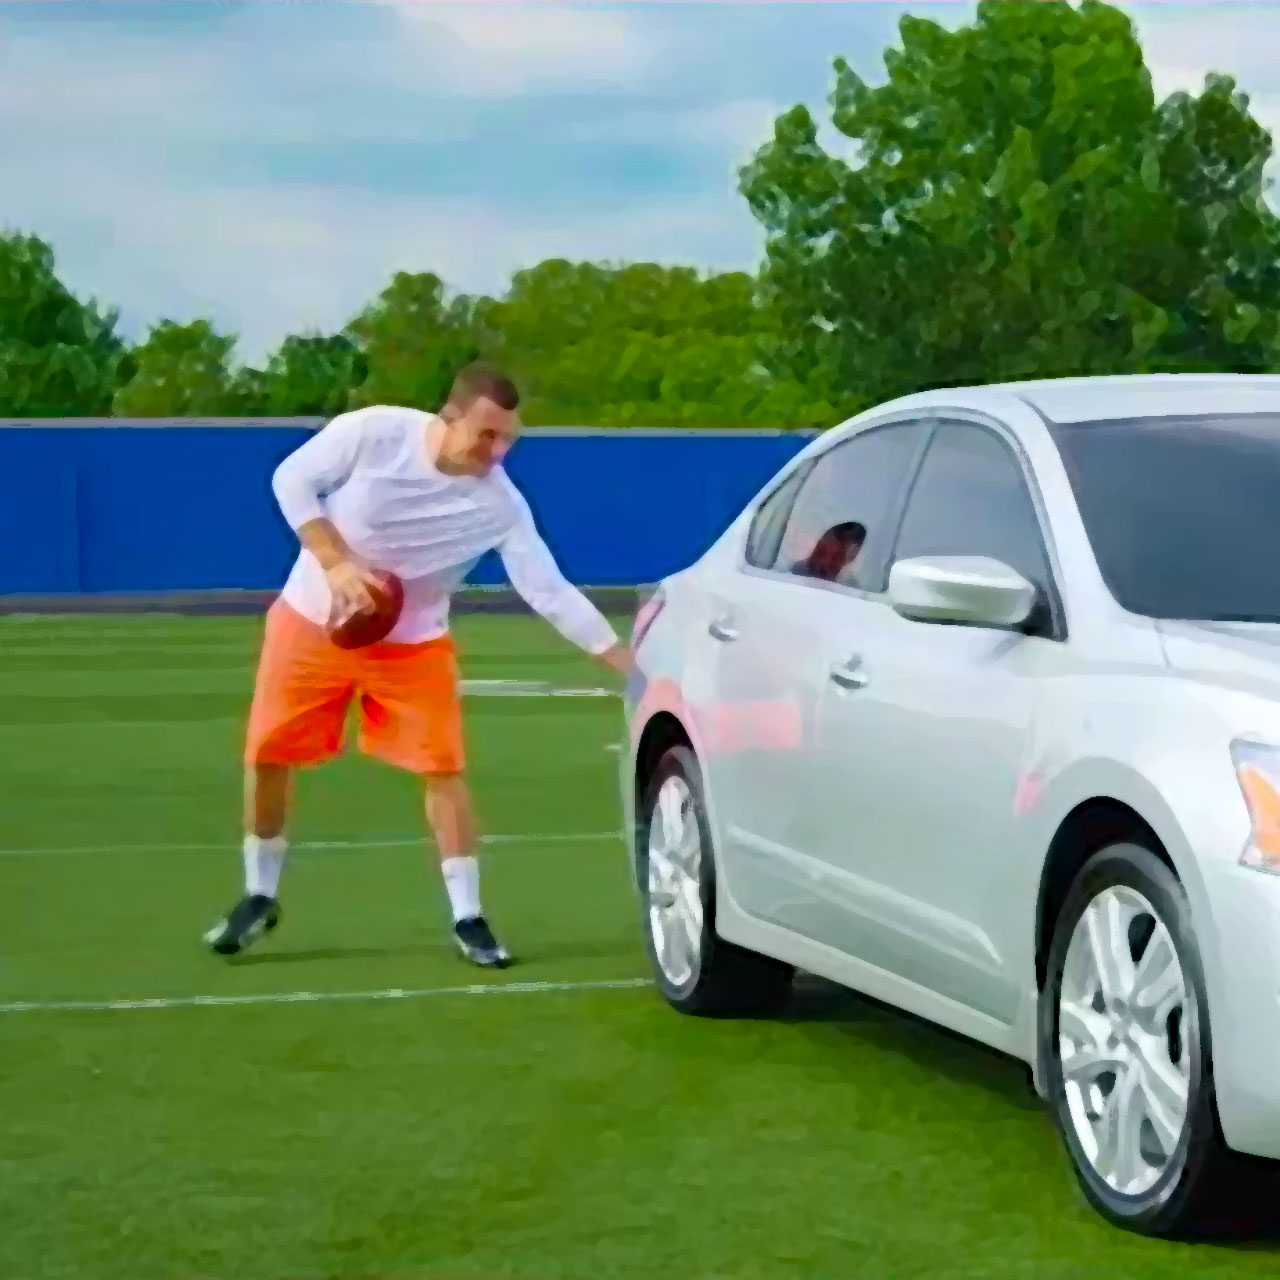 Johnny Manziel pats a Nissan Altima on the bumper